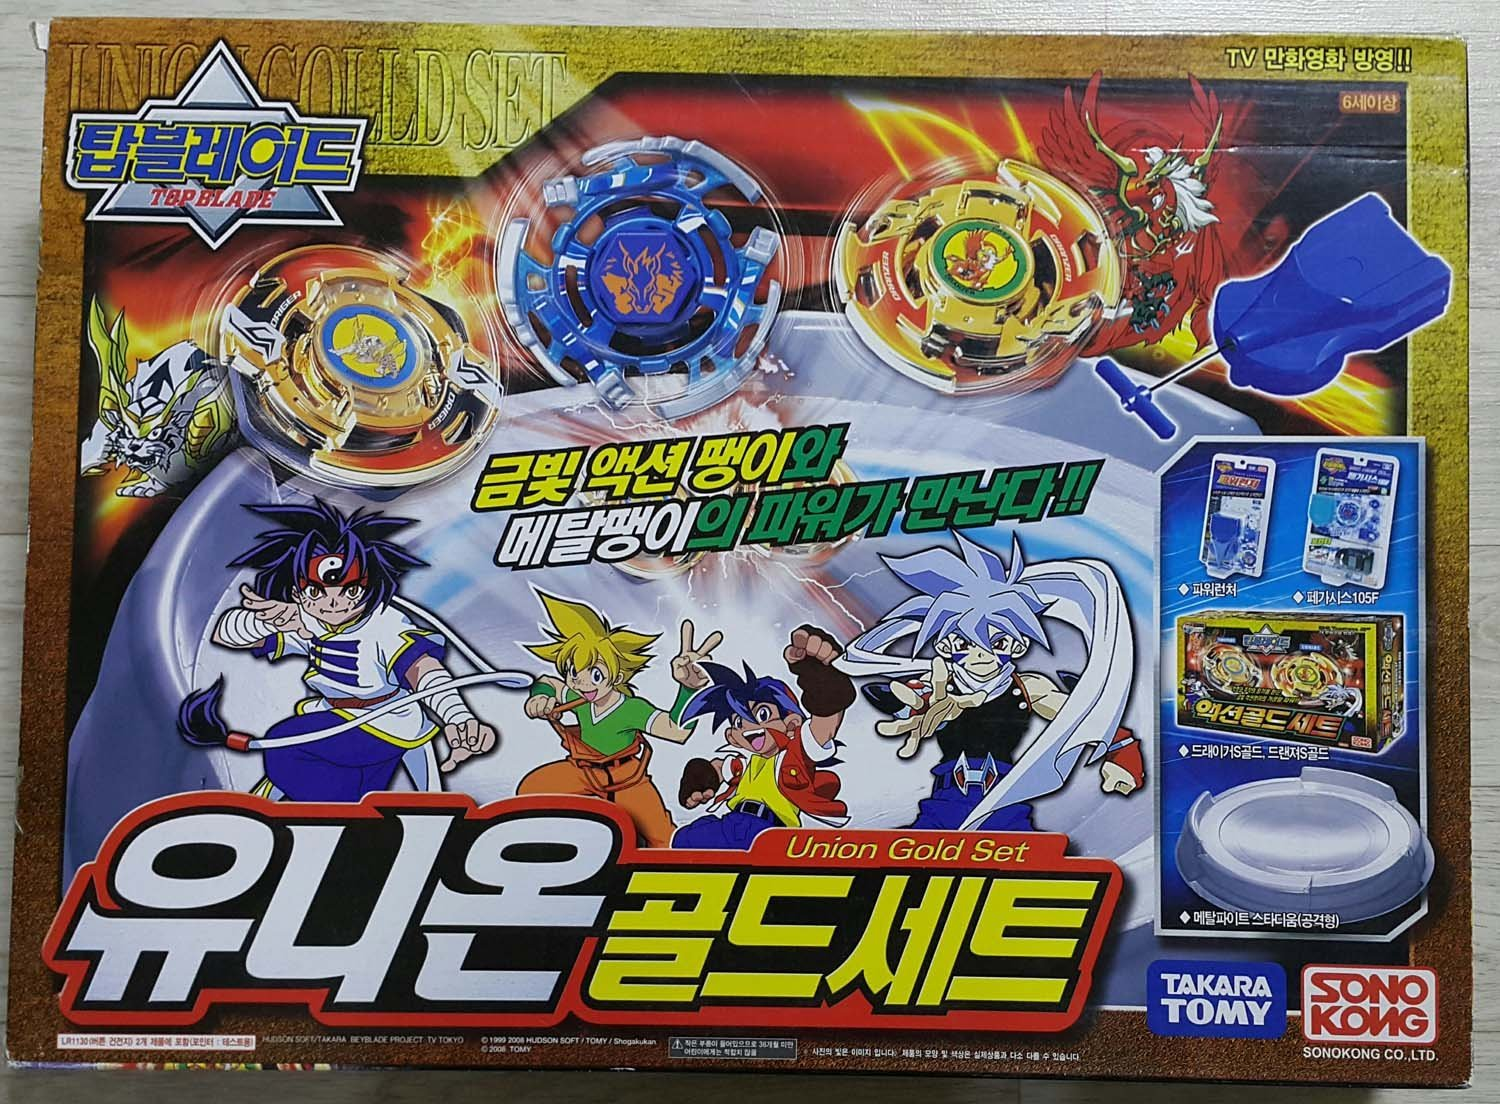 TAKARA TOMY Beyblade Top Blade Union Gold Set by Beyblade